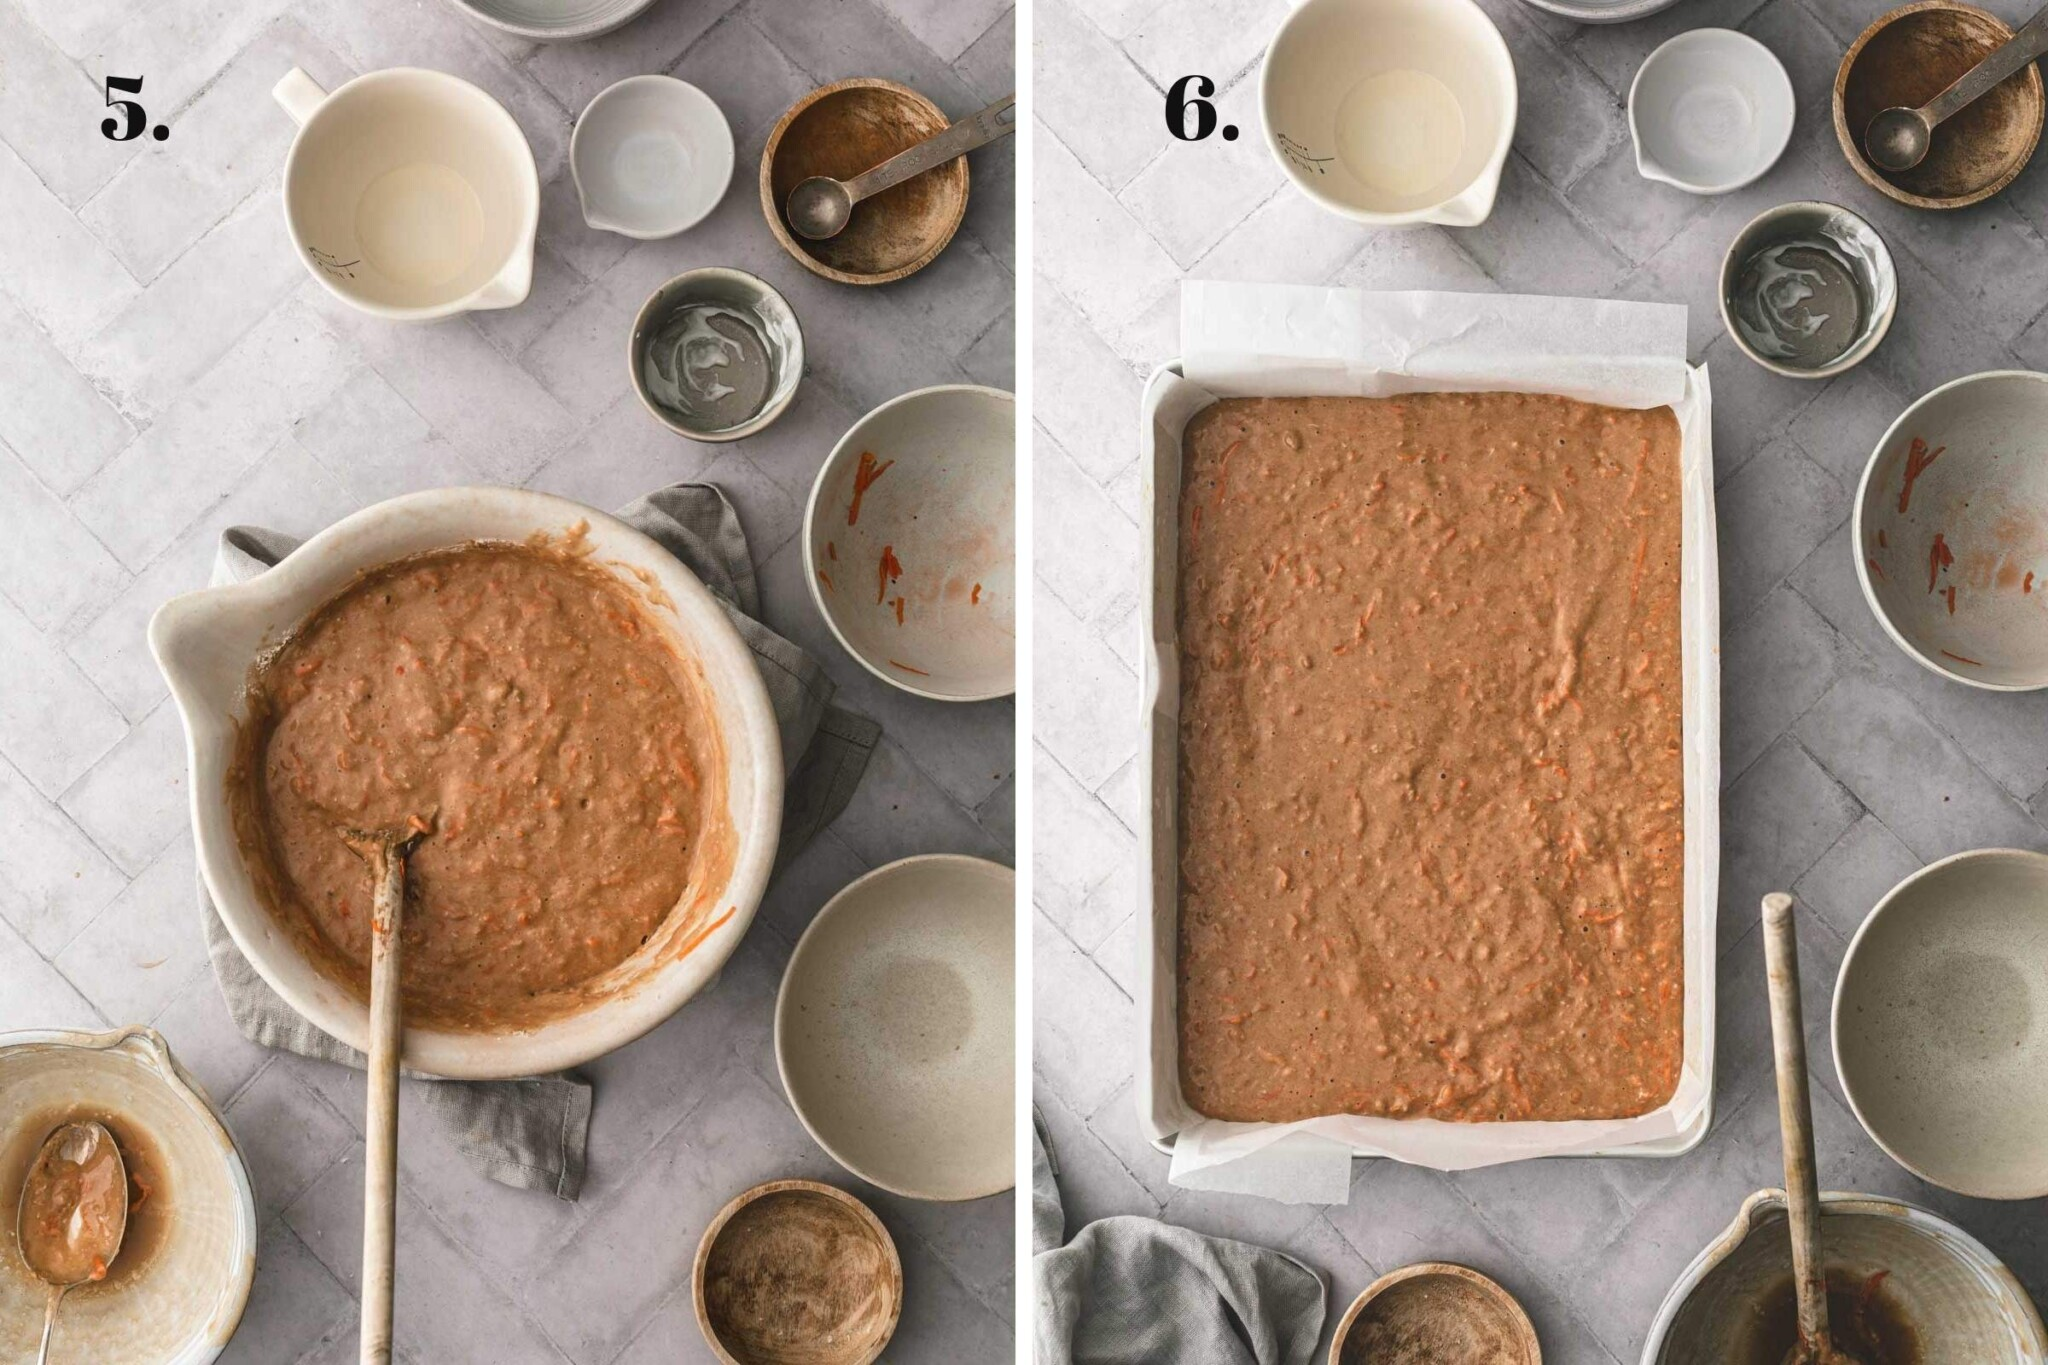 Two food images showing carrot cake completely mixed and in a baking tray.